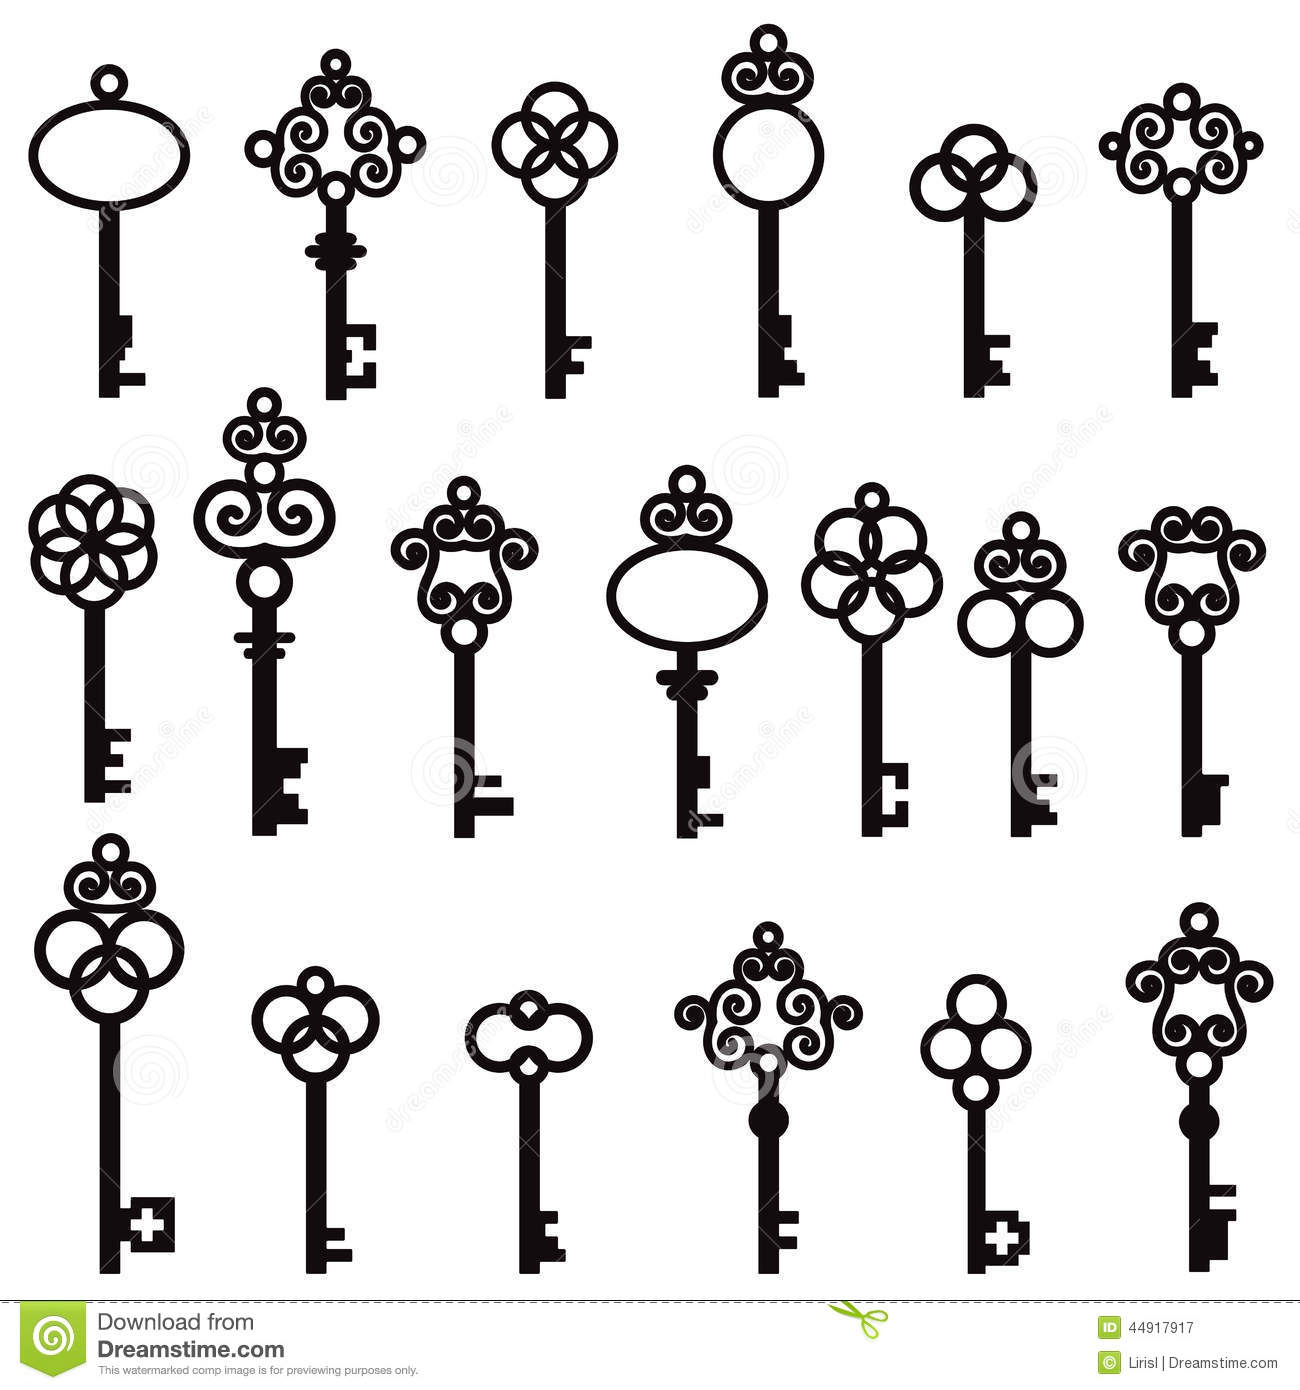 Vector Key Illustration: Set Of Old Keys With Decorative Elements In Retro Style